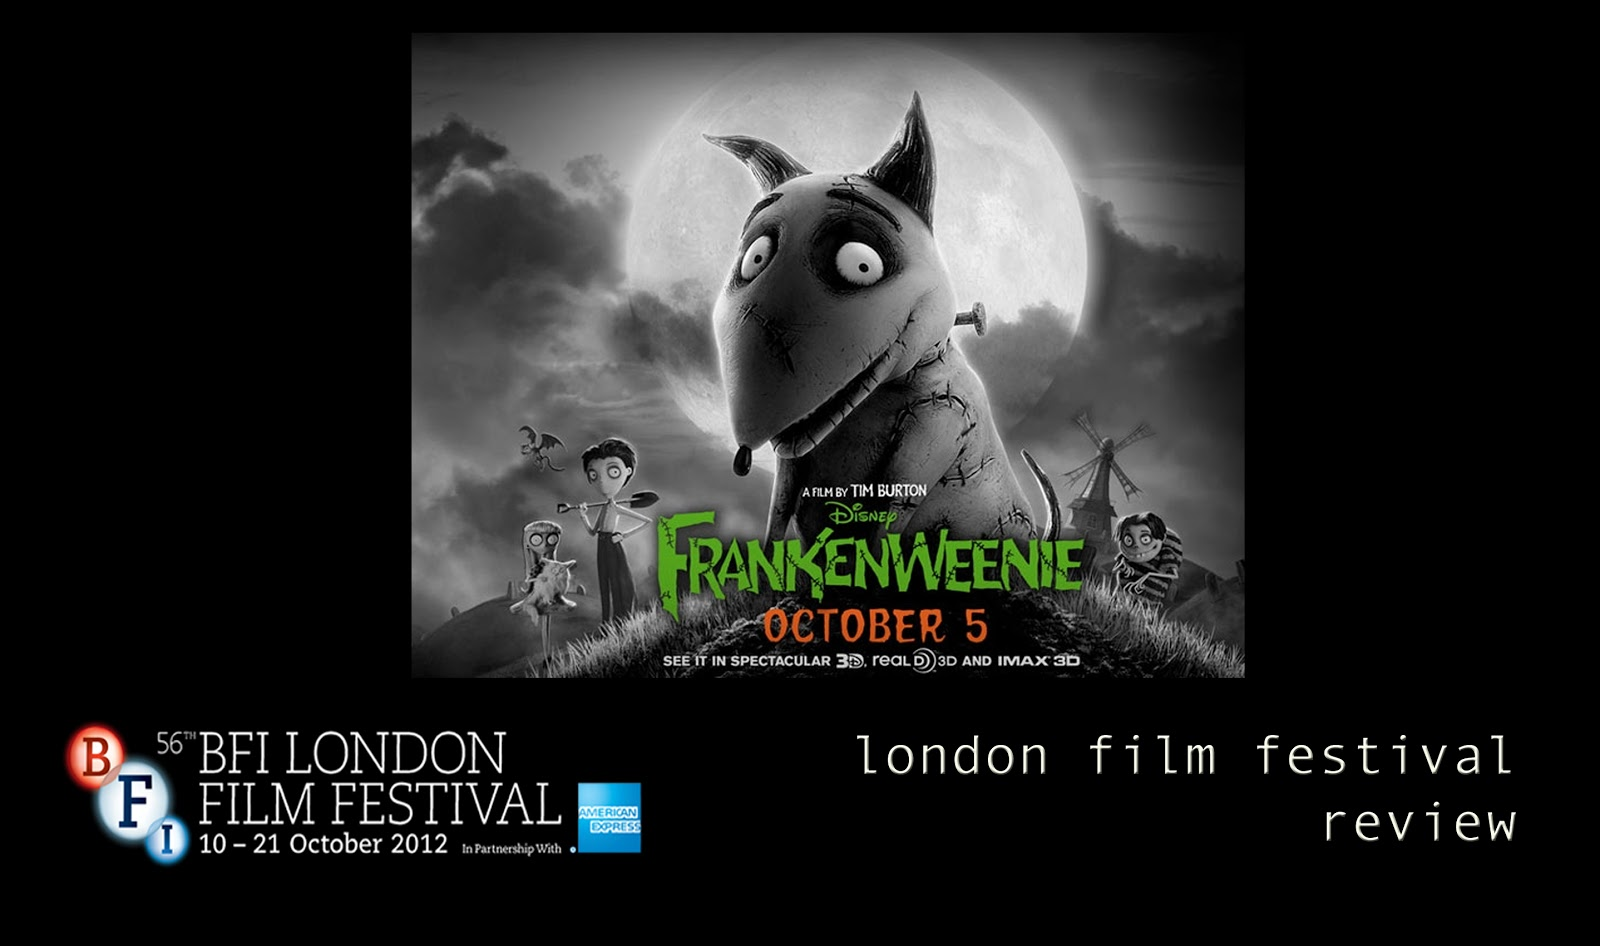 A Musings London Film Festival Review Frankenweenie